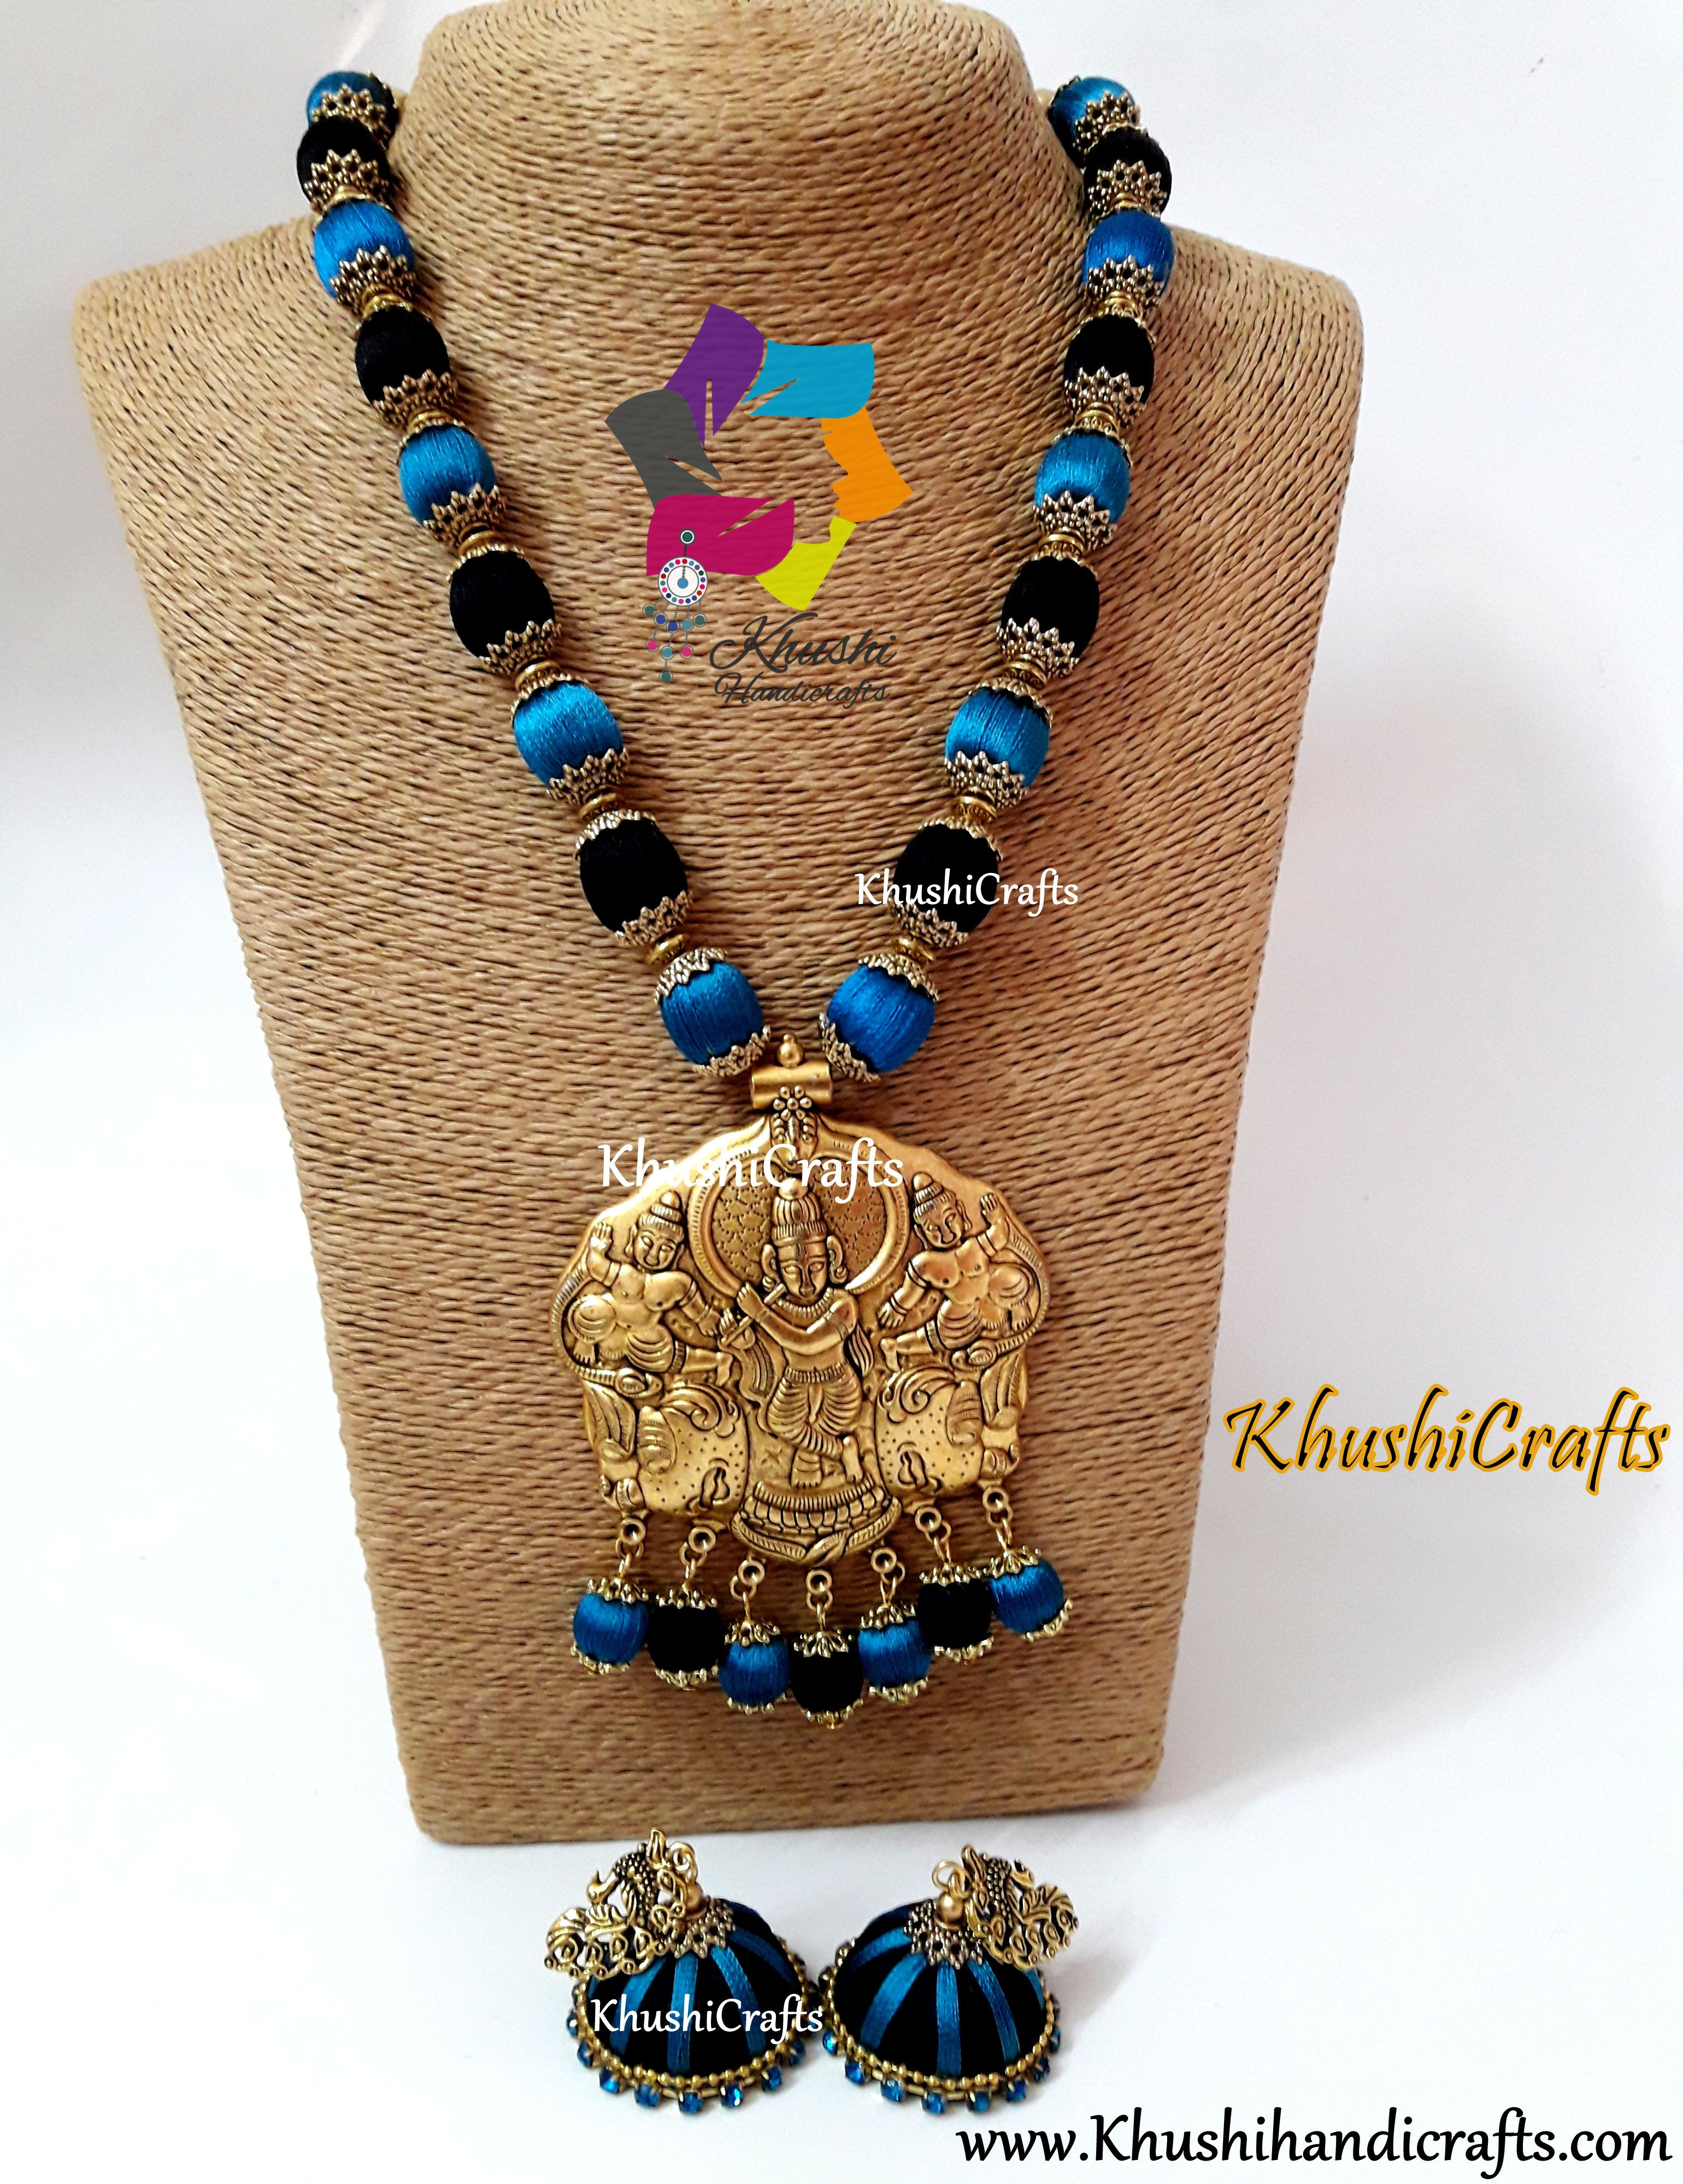 2138df376 Handmade Silk thread Jewellery set consists of a neclace,a pair of earrings  as indicated in the snap crafted in Peacock Blue and Black accompanied with  ...